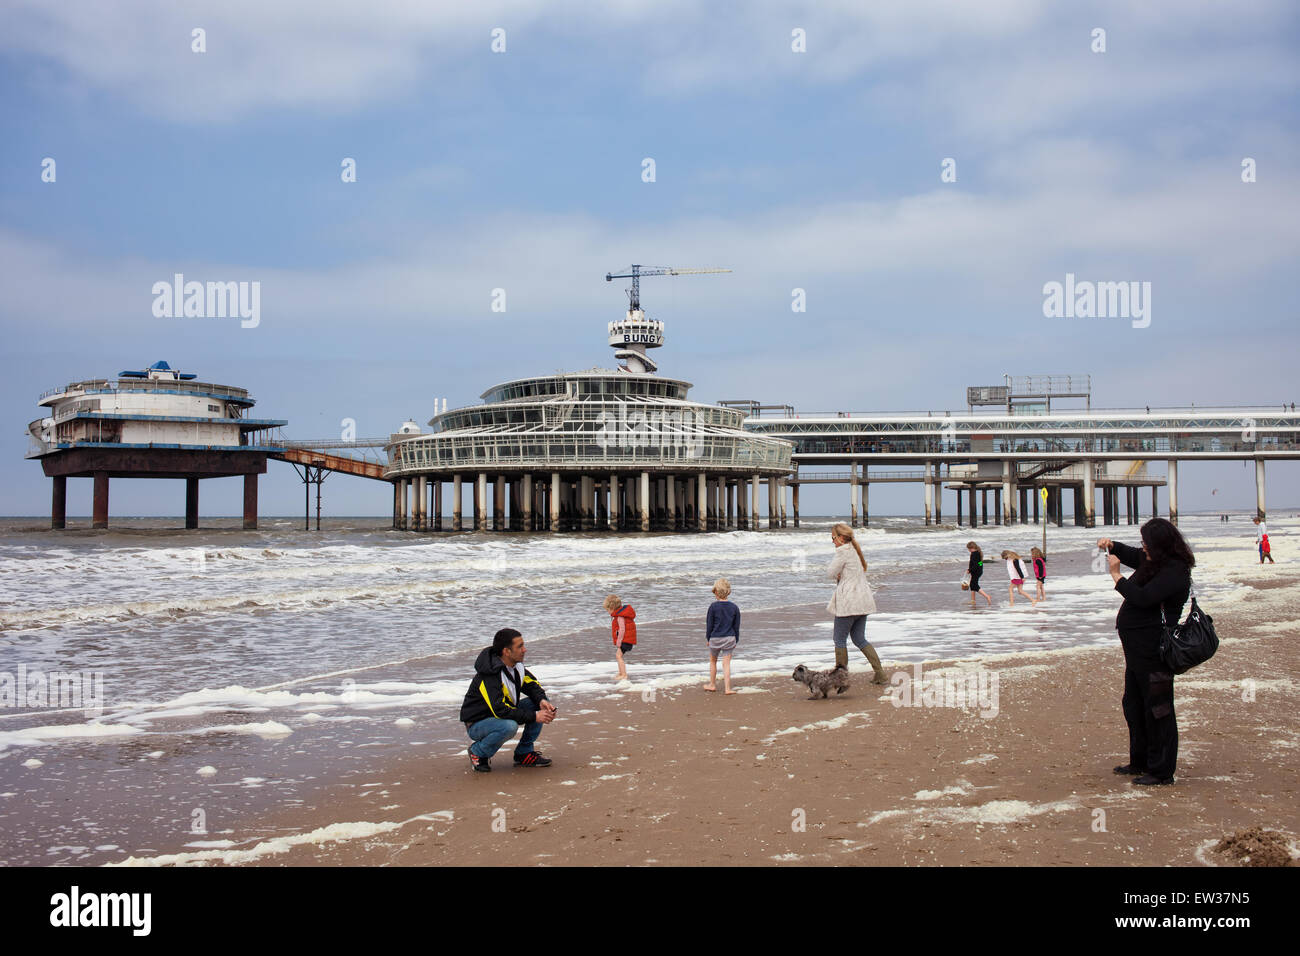 People on Scheveningen beach and pier by the North Sea in The Hague (Den Haag), South Holland, the Netherlands. Stock Photo